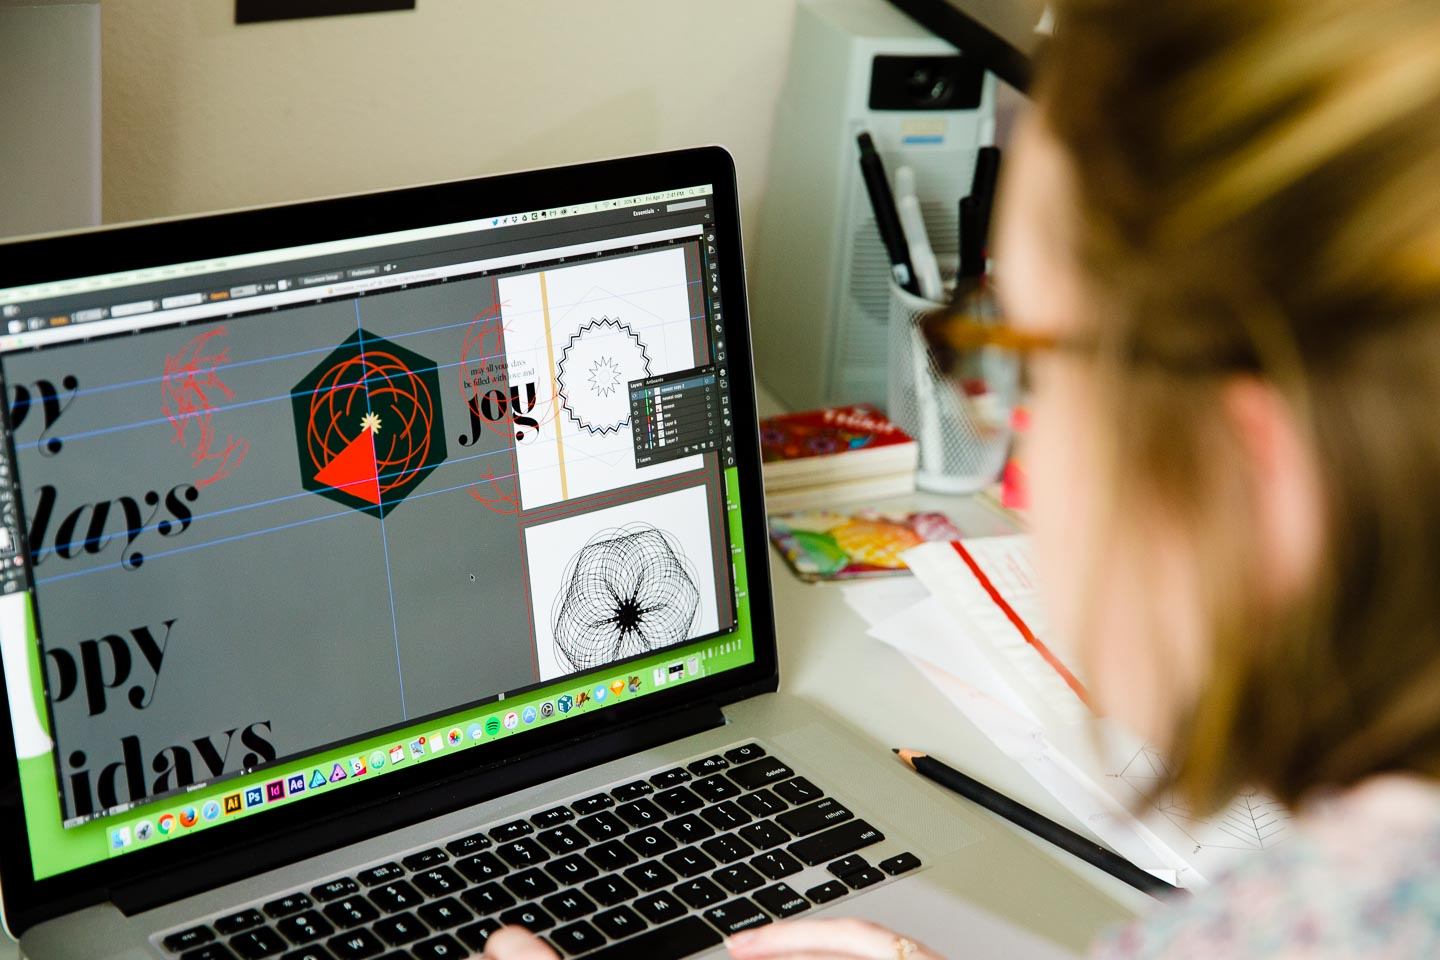 A woman designing circular patterns on a laptop